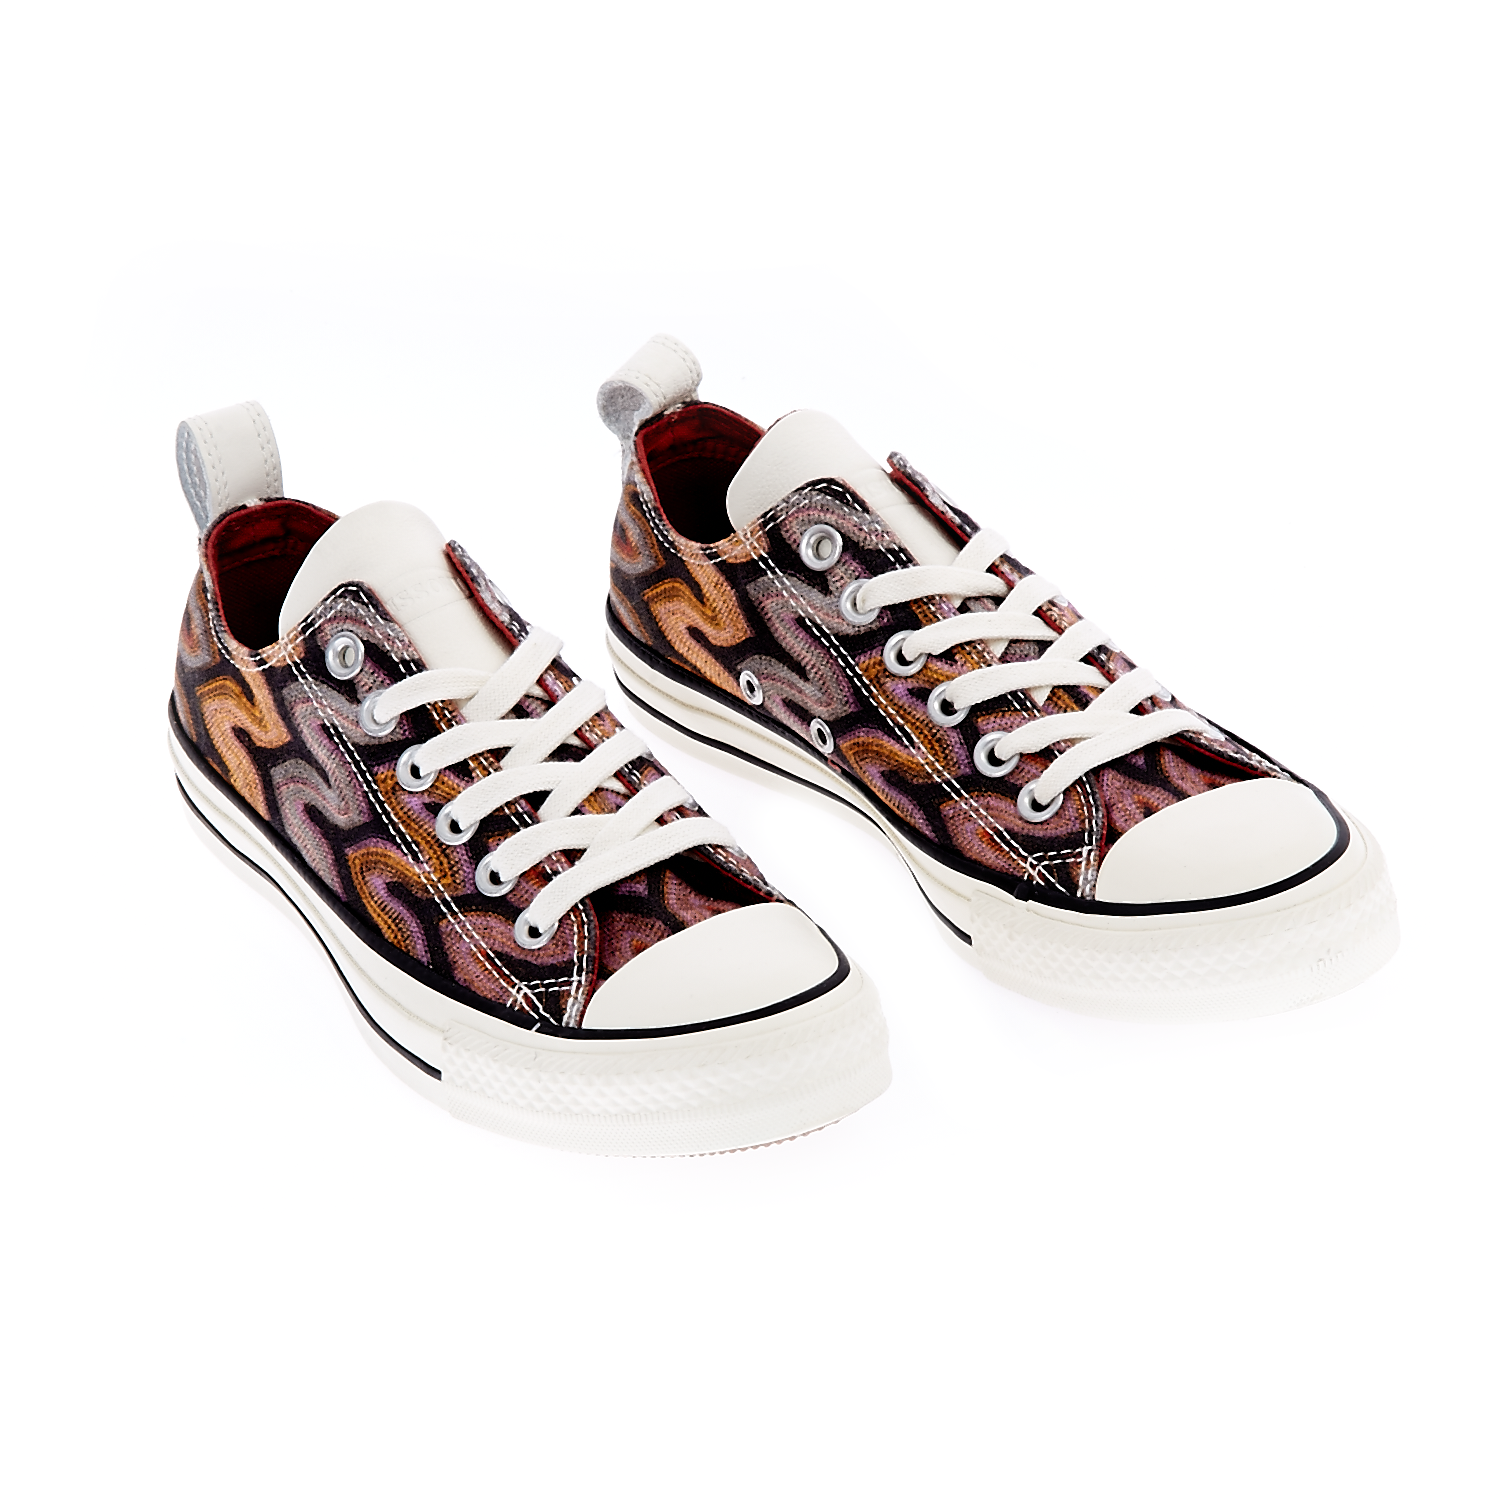 size 40 ae4ab 78056 CONVERSE - Unisex παπούτσια Chuck Taylor All Star Ox μαύρα-ροζ, Ανδρικά  sneakers, ΑΝΔΡΑΣ   ΠΑΠΟΥΤΣΙΑ   SNEAKERS